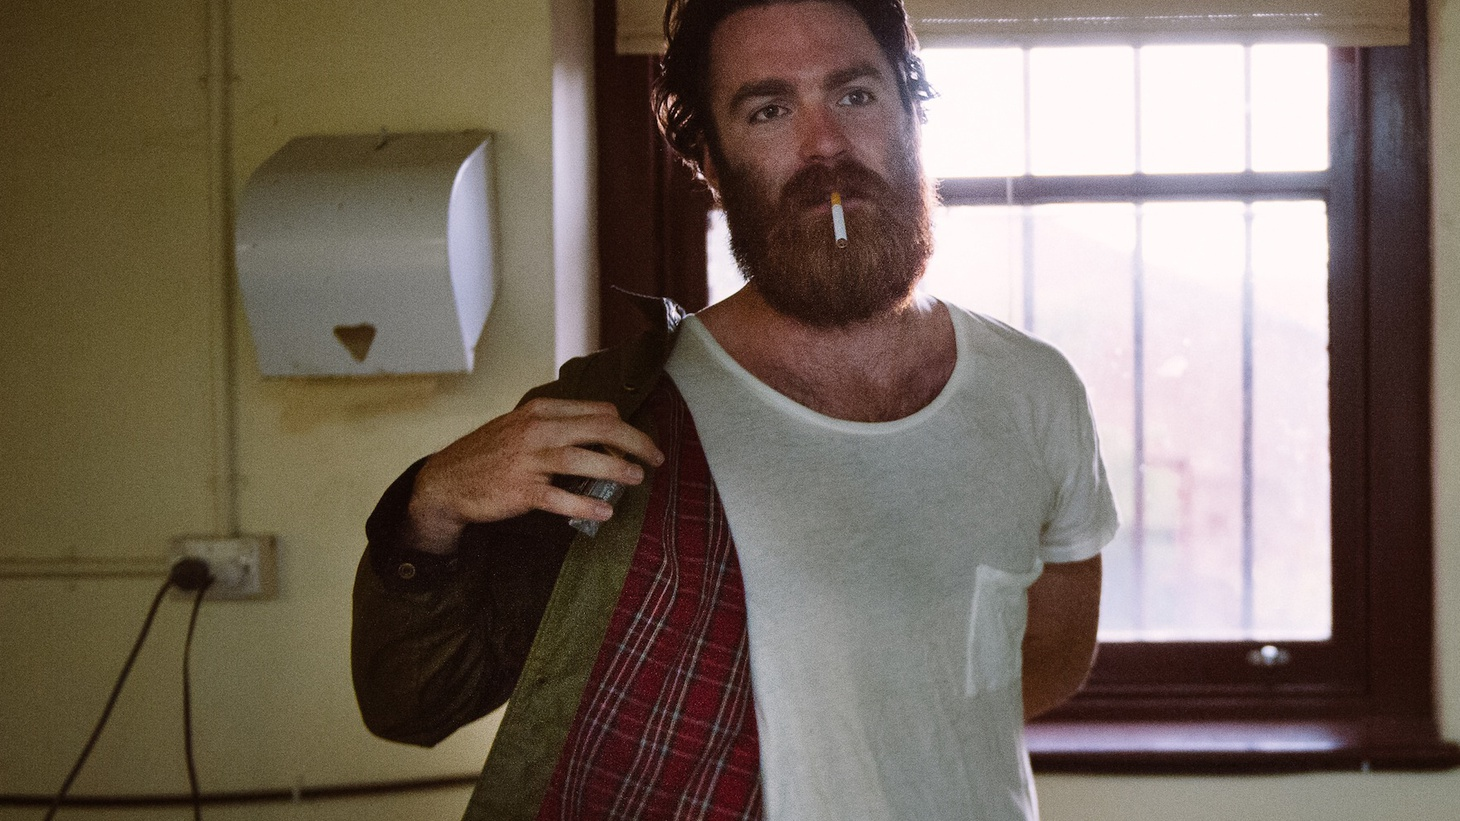 Australian producer/singer Chet Faker has been a KCRW favorite for years and we hosted him for a live session around the release of his full length debut in 2014.